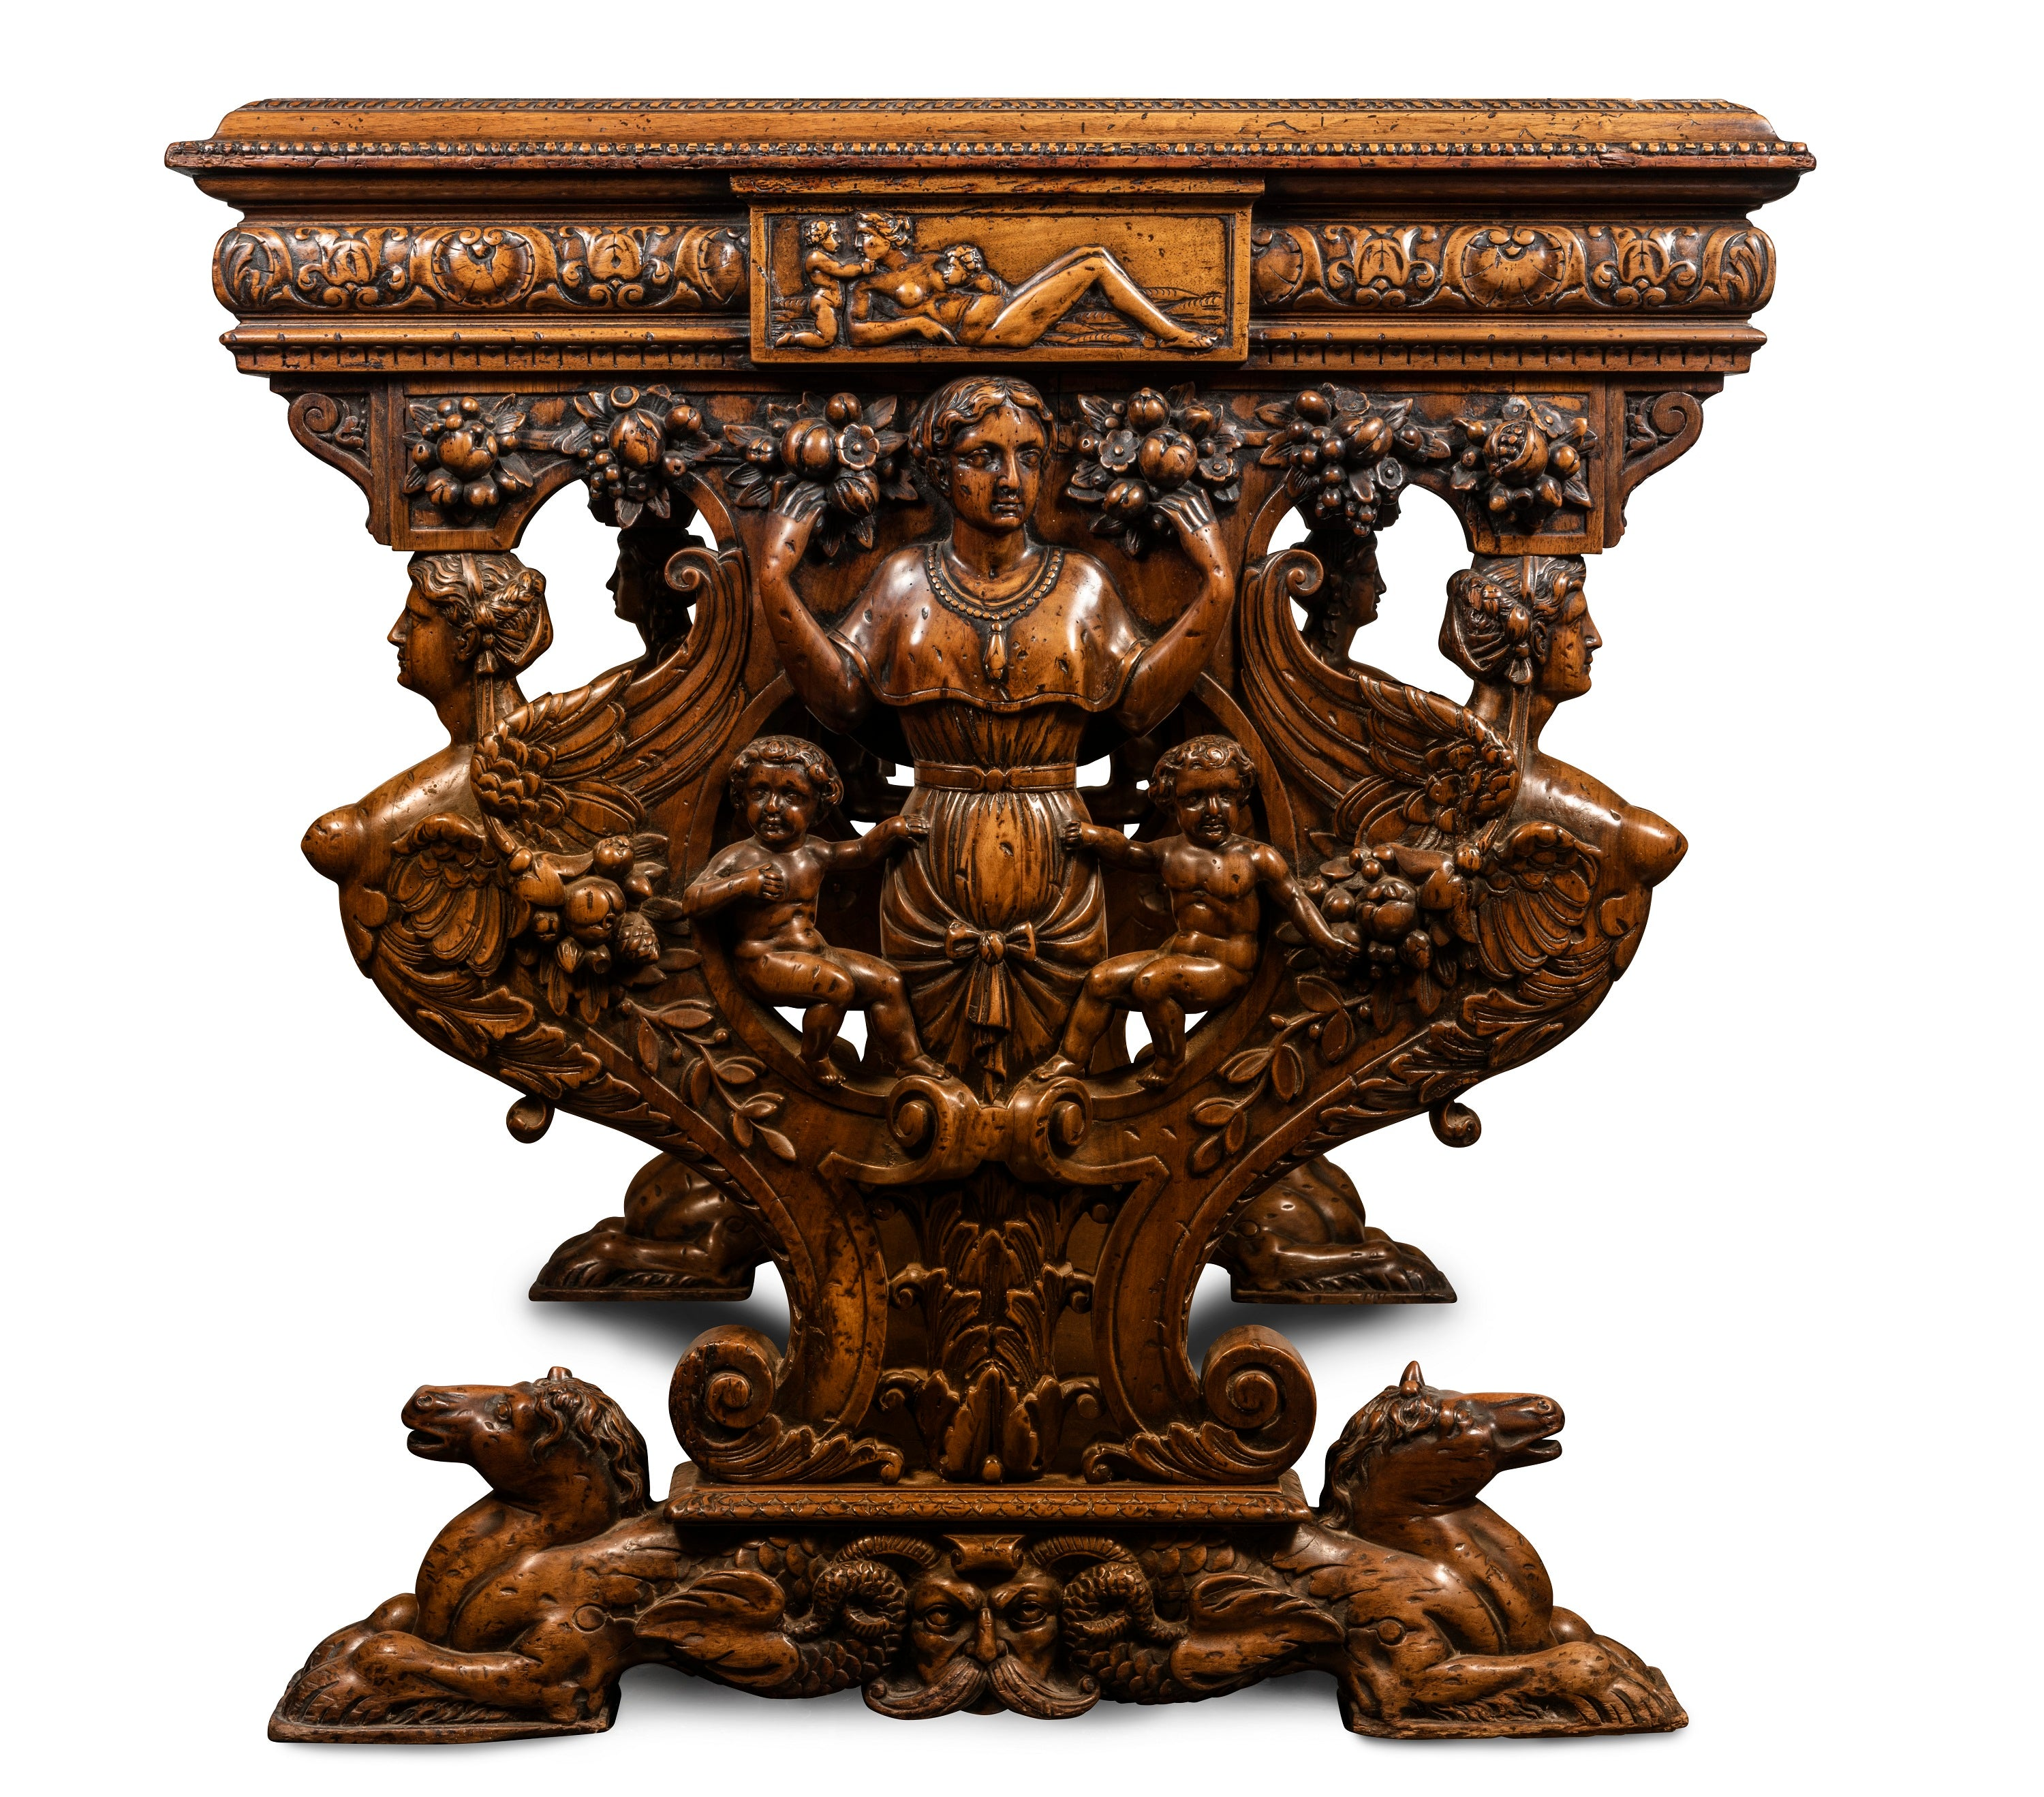 A Superbly Carved Late 18th – Early 19th Century Italian Walnut Centre Table